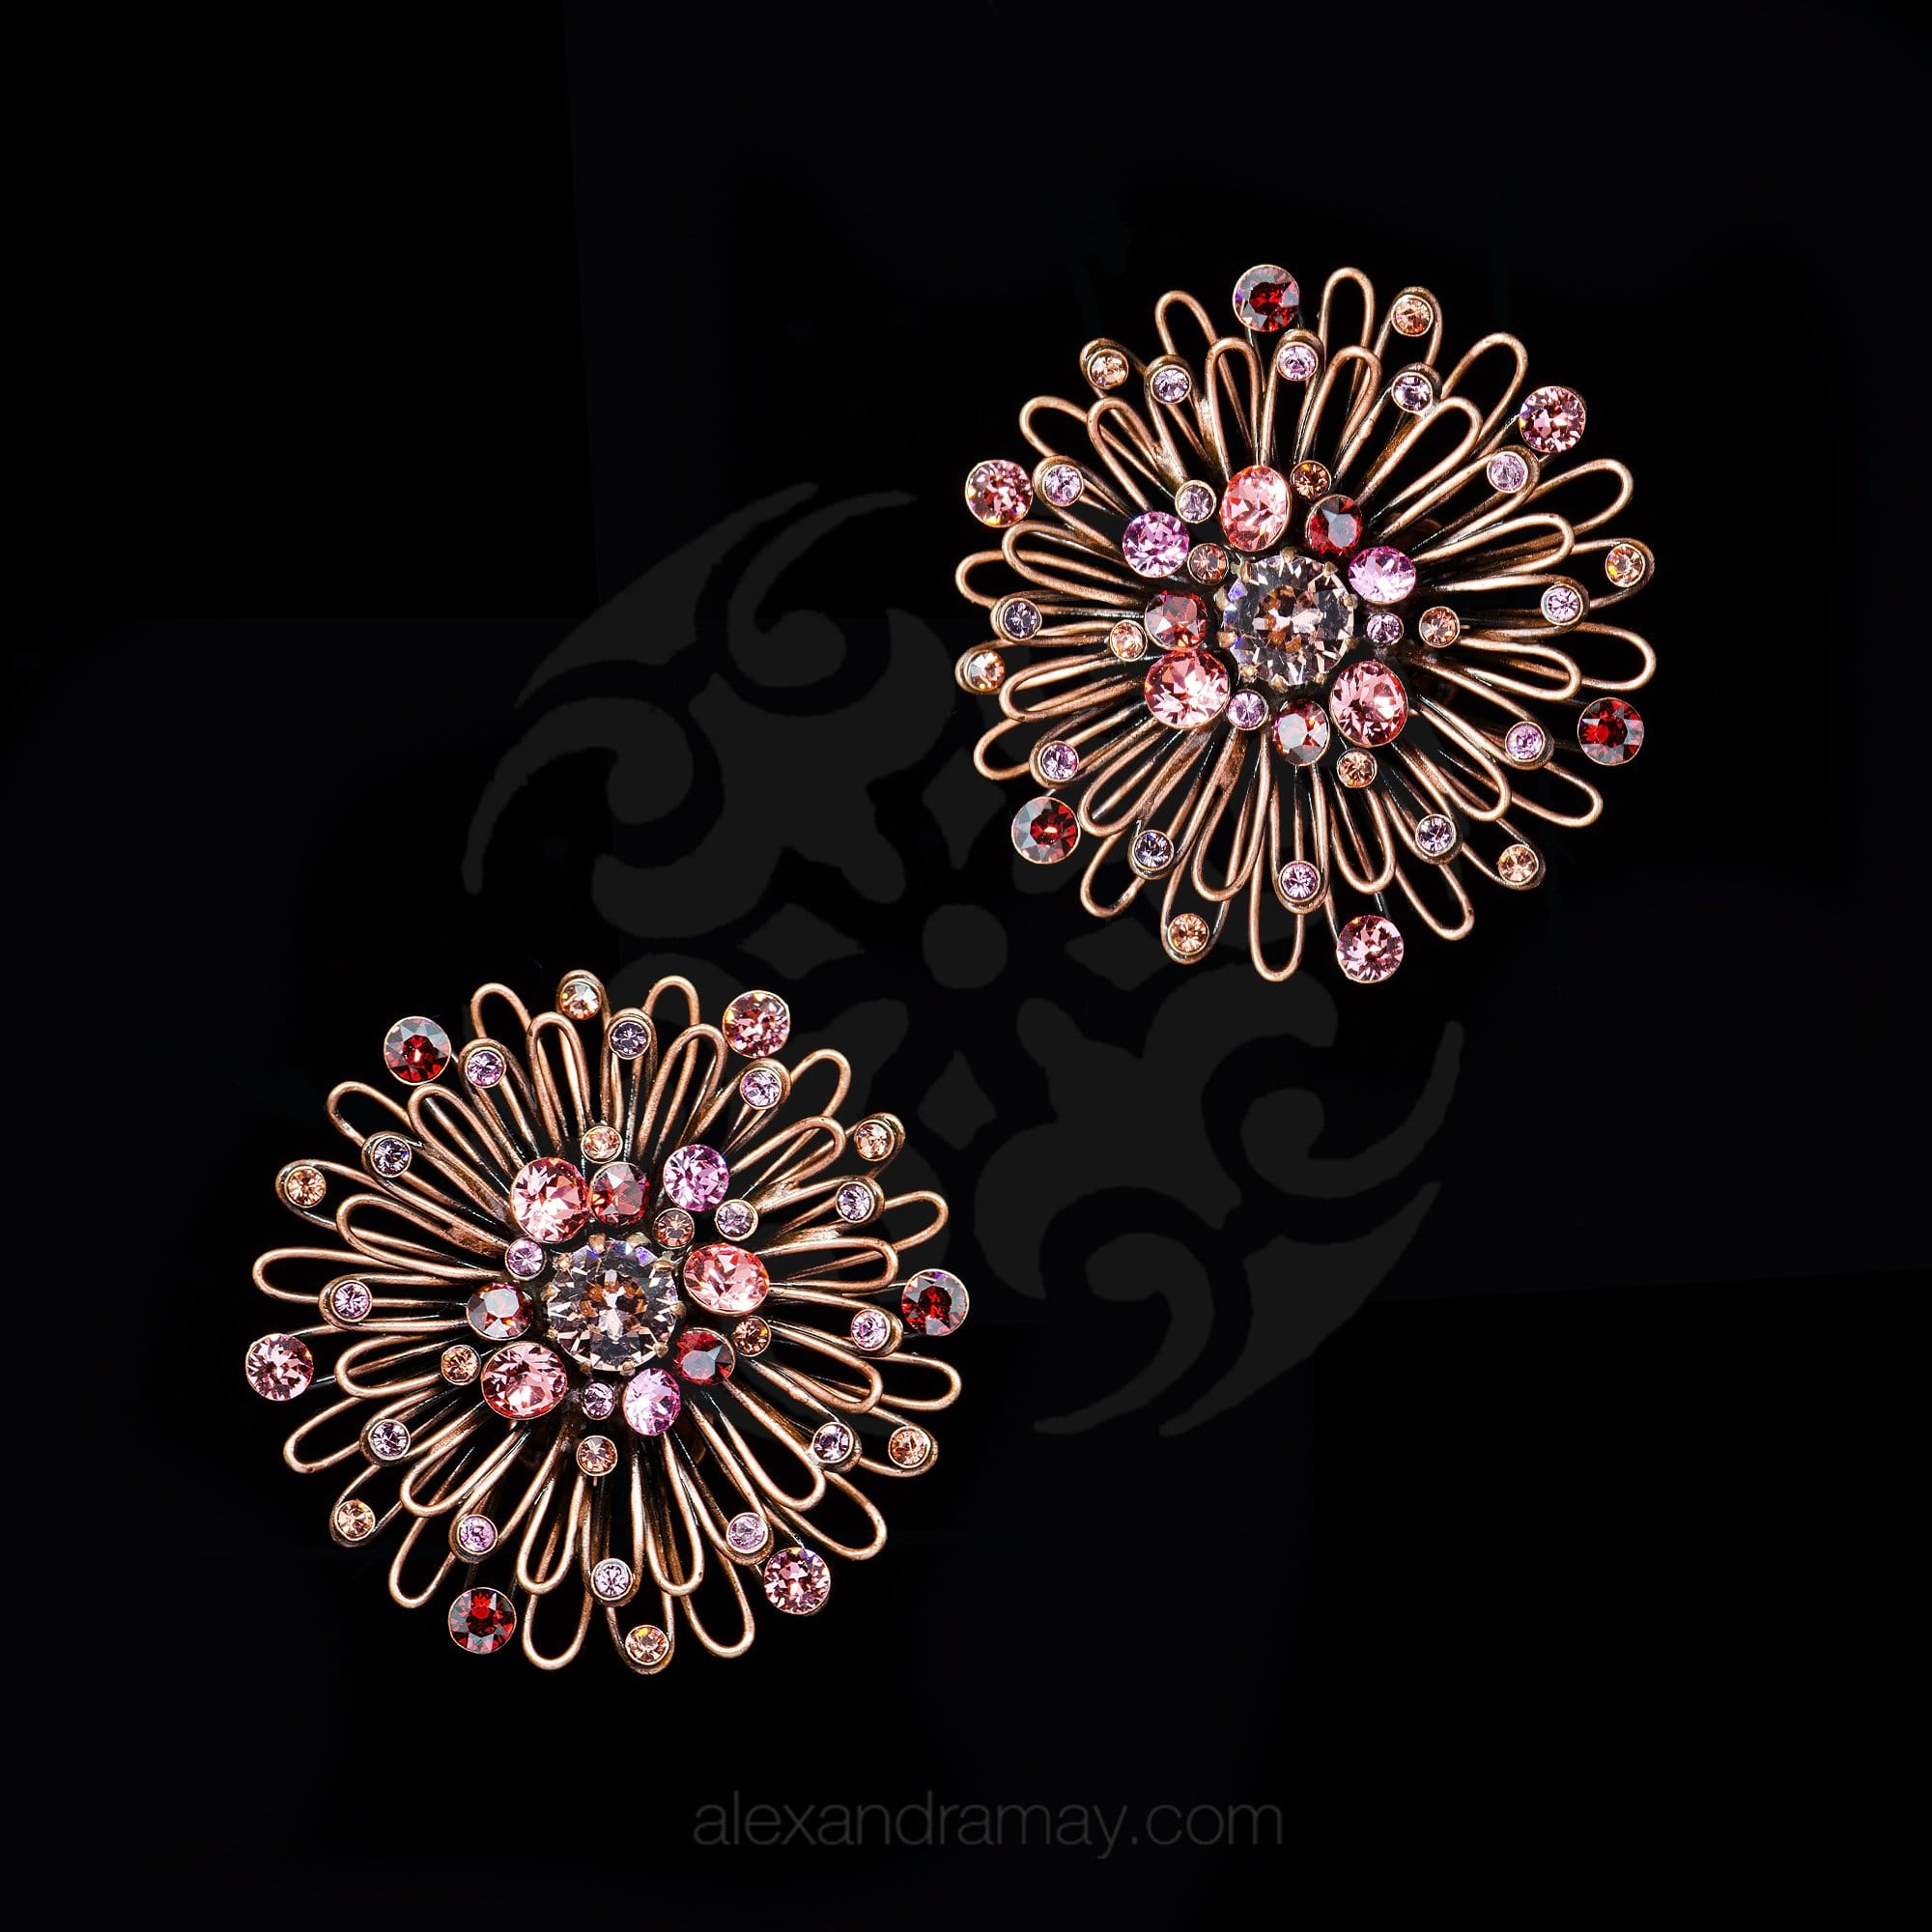 Konplott 'Distel' Rose Pink Swarovski Clip-on Earrings (331669)